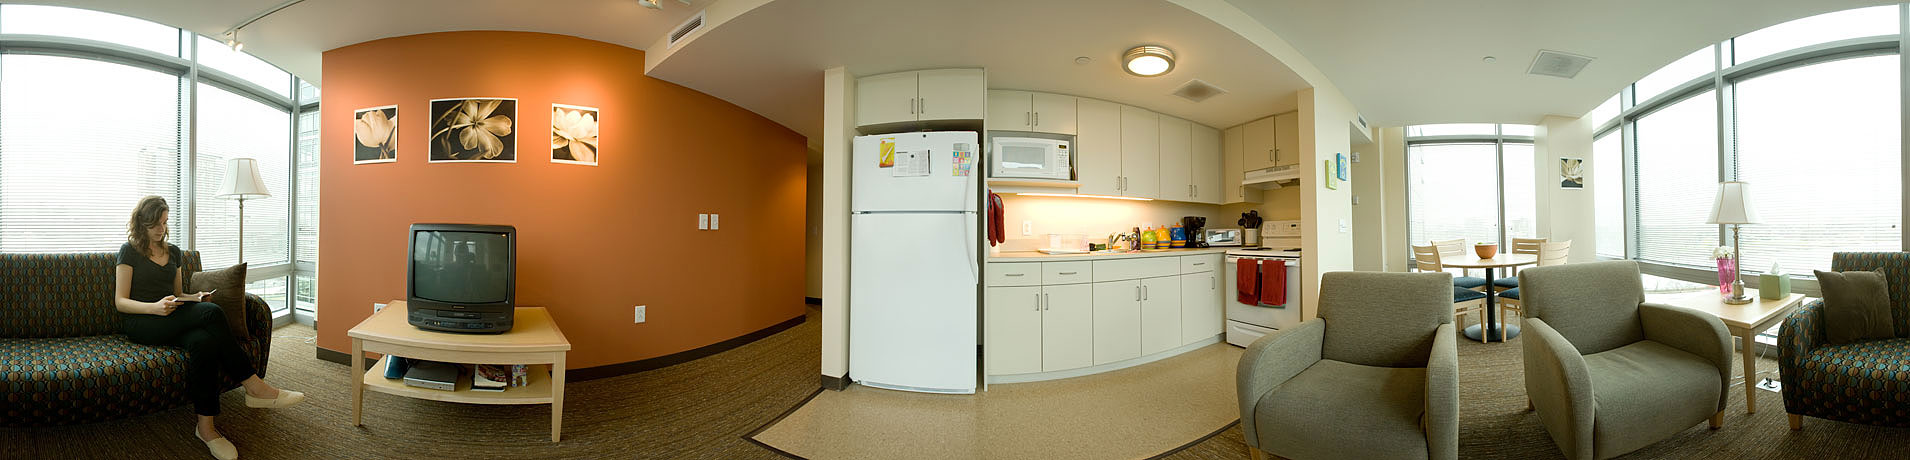 33 Harry Agganis Way North Apartment Style Housing Boston University